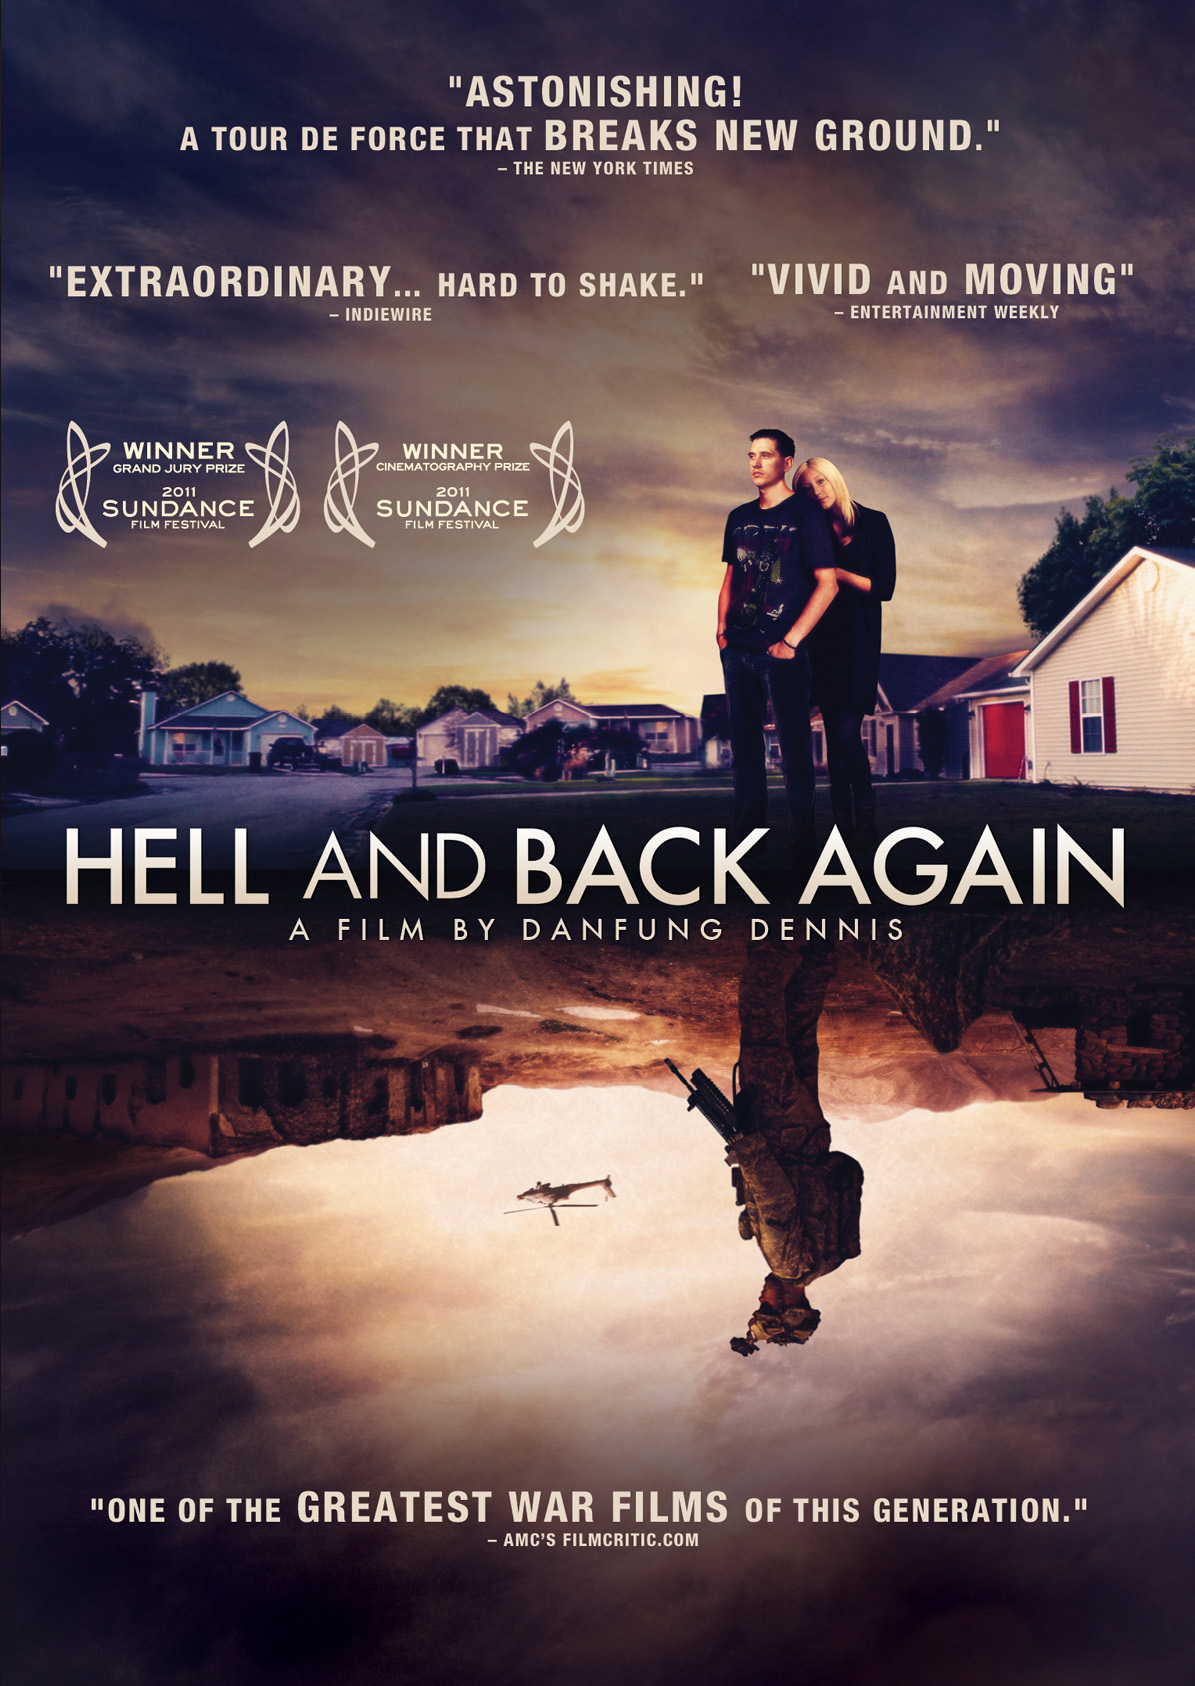 http://www.newvideo.com/wp-content/uploads/2011/10/Hell-Back-Again-DVD-F.jpg